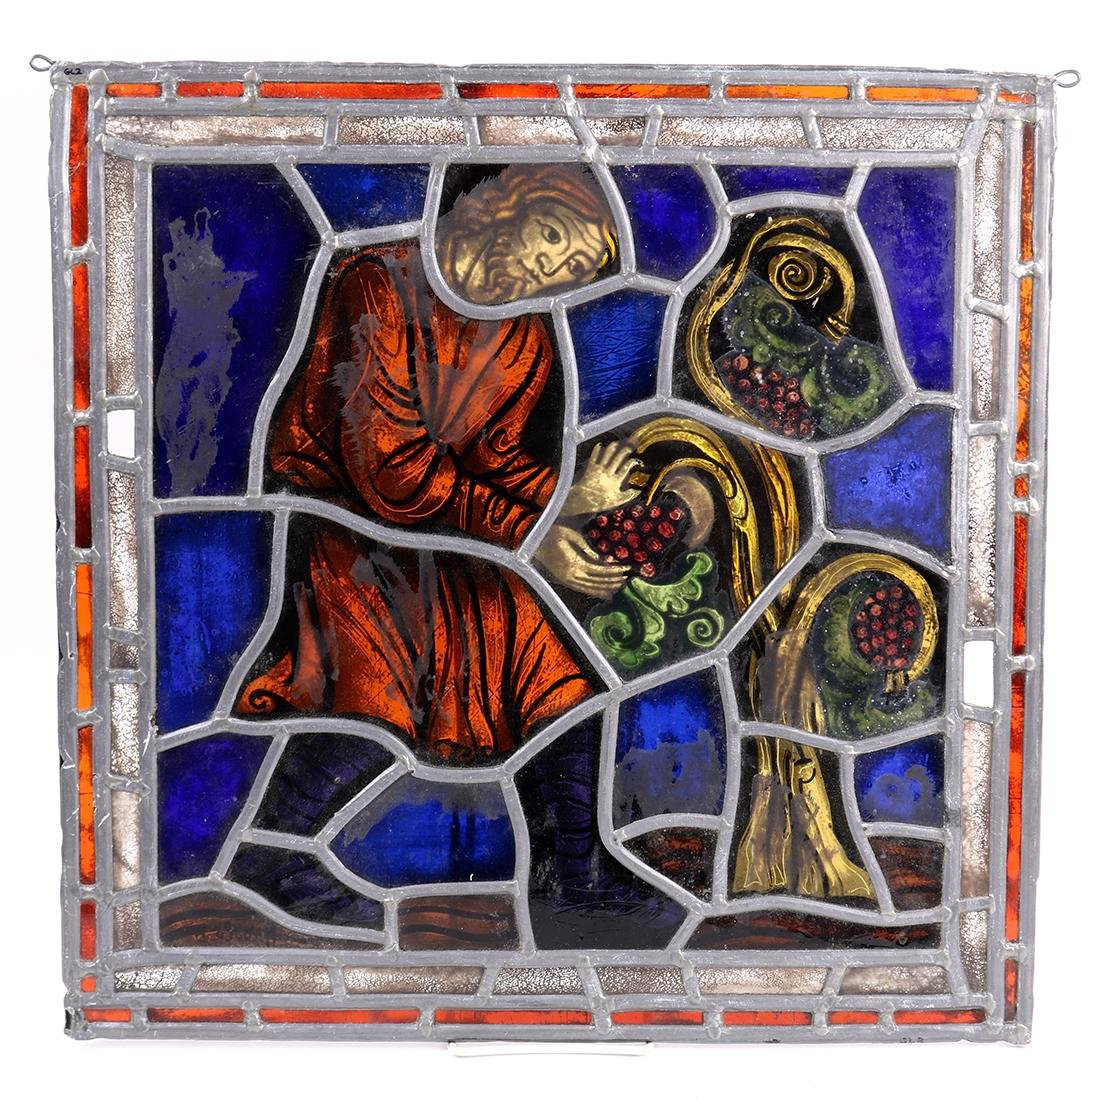 Abstract stained glass window, having polychrome glass